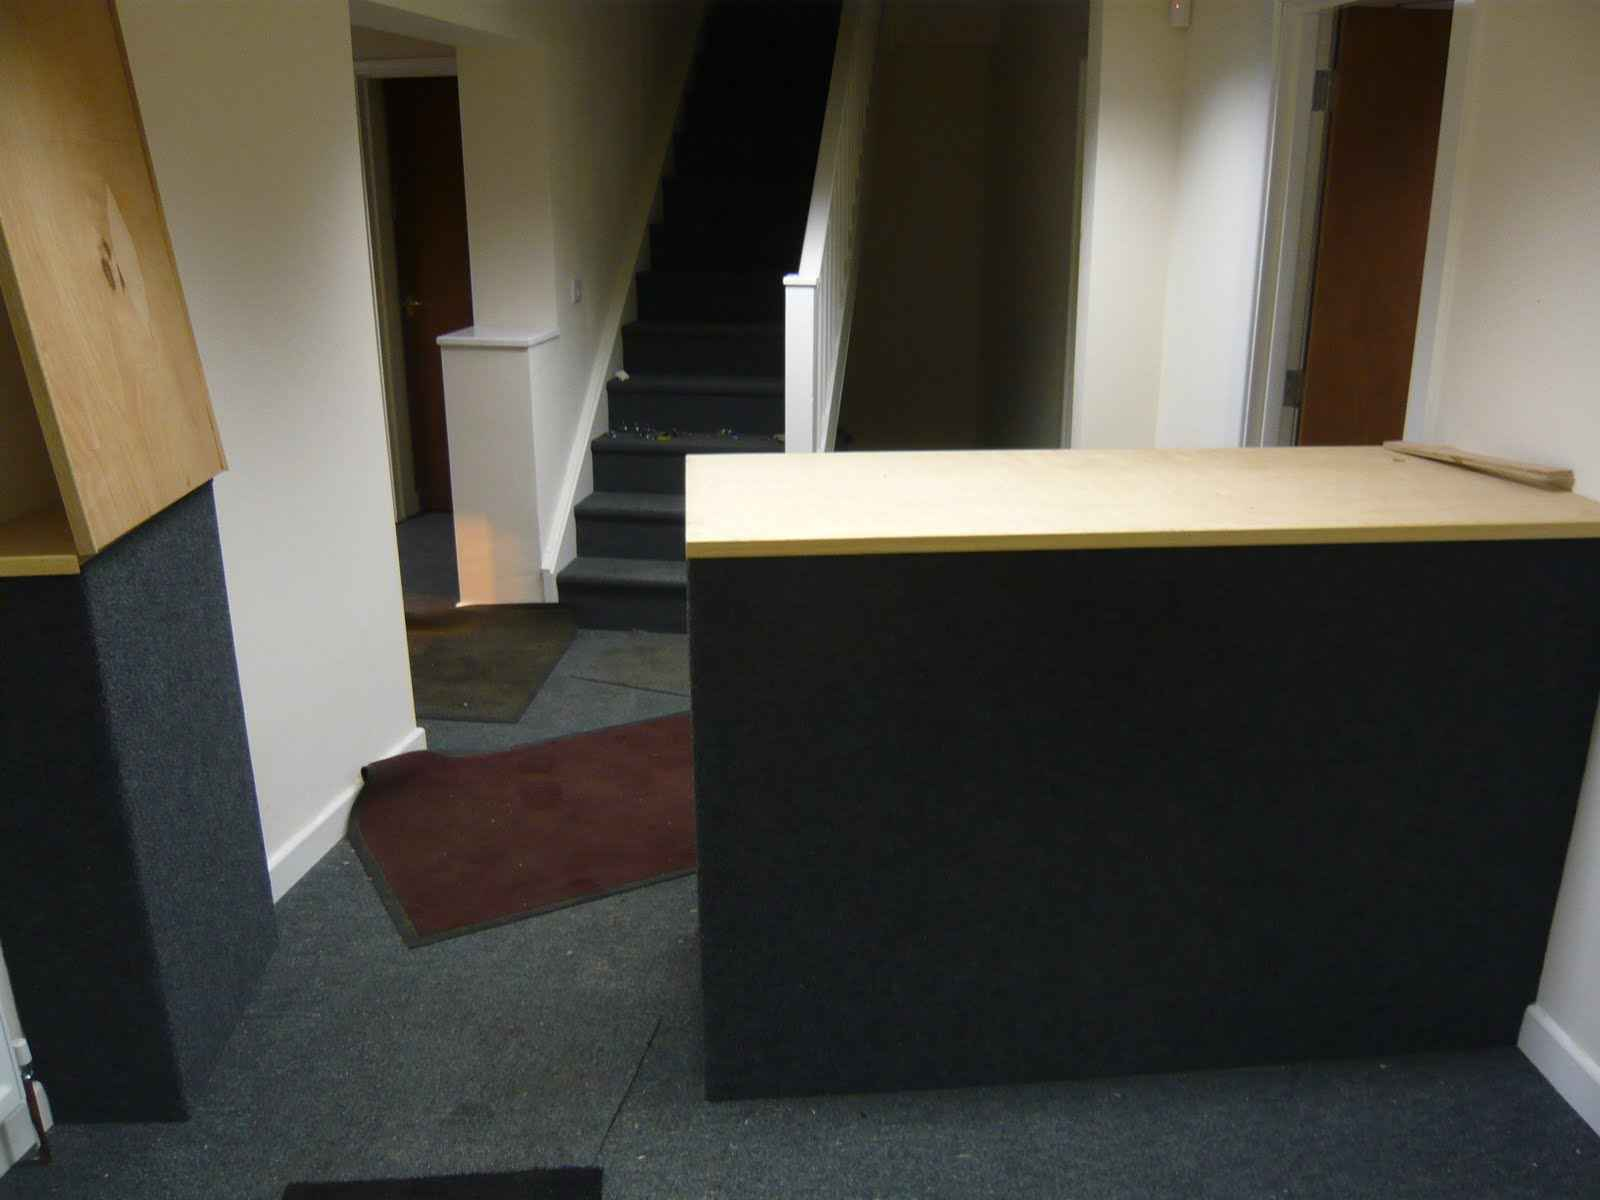 Cheap IKEA Reception Desk for Home Office